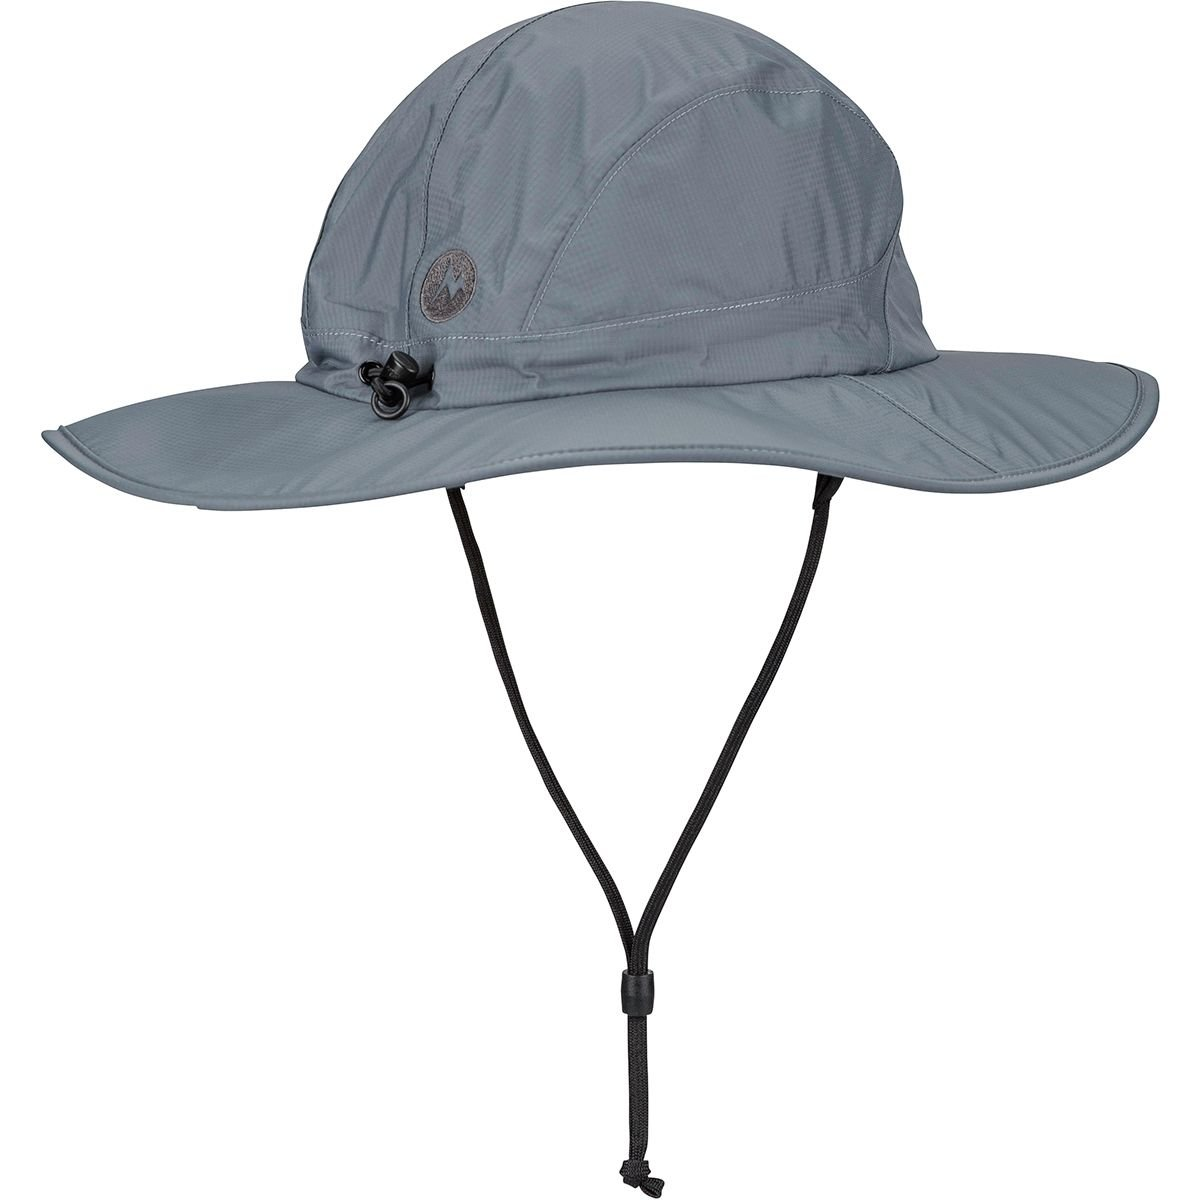 Marmot PreCip Safari Hat - Men's Steel Onyx, M/L 16980-1515-4